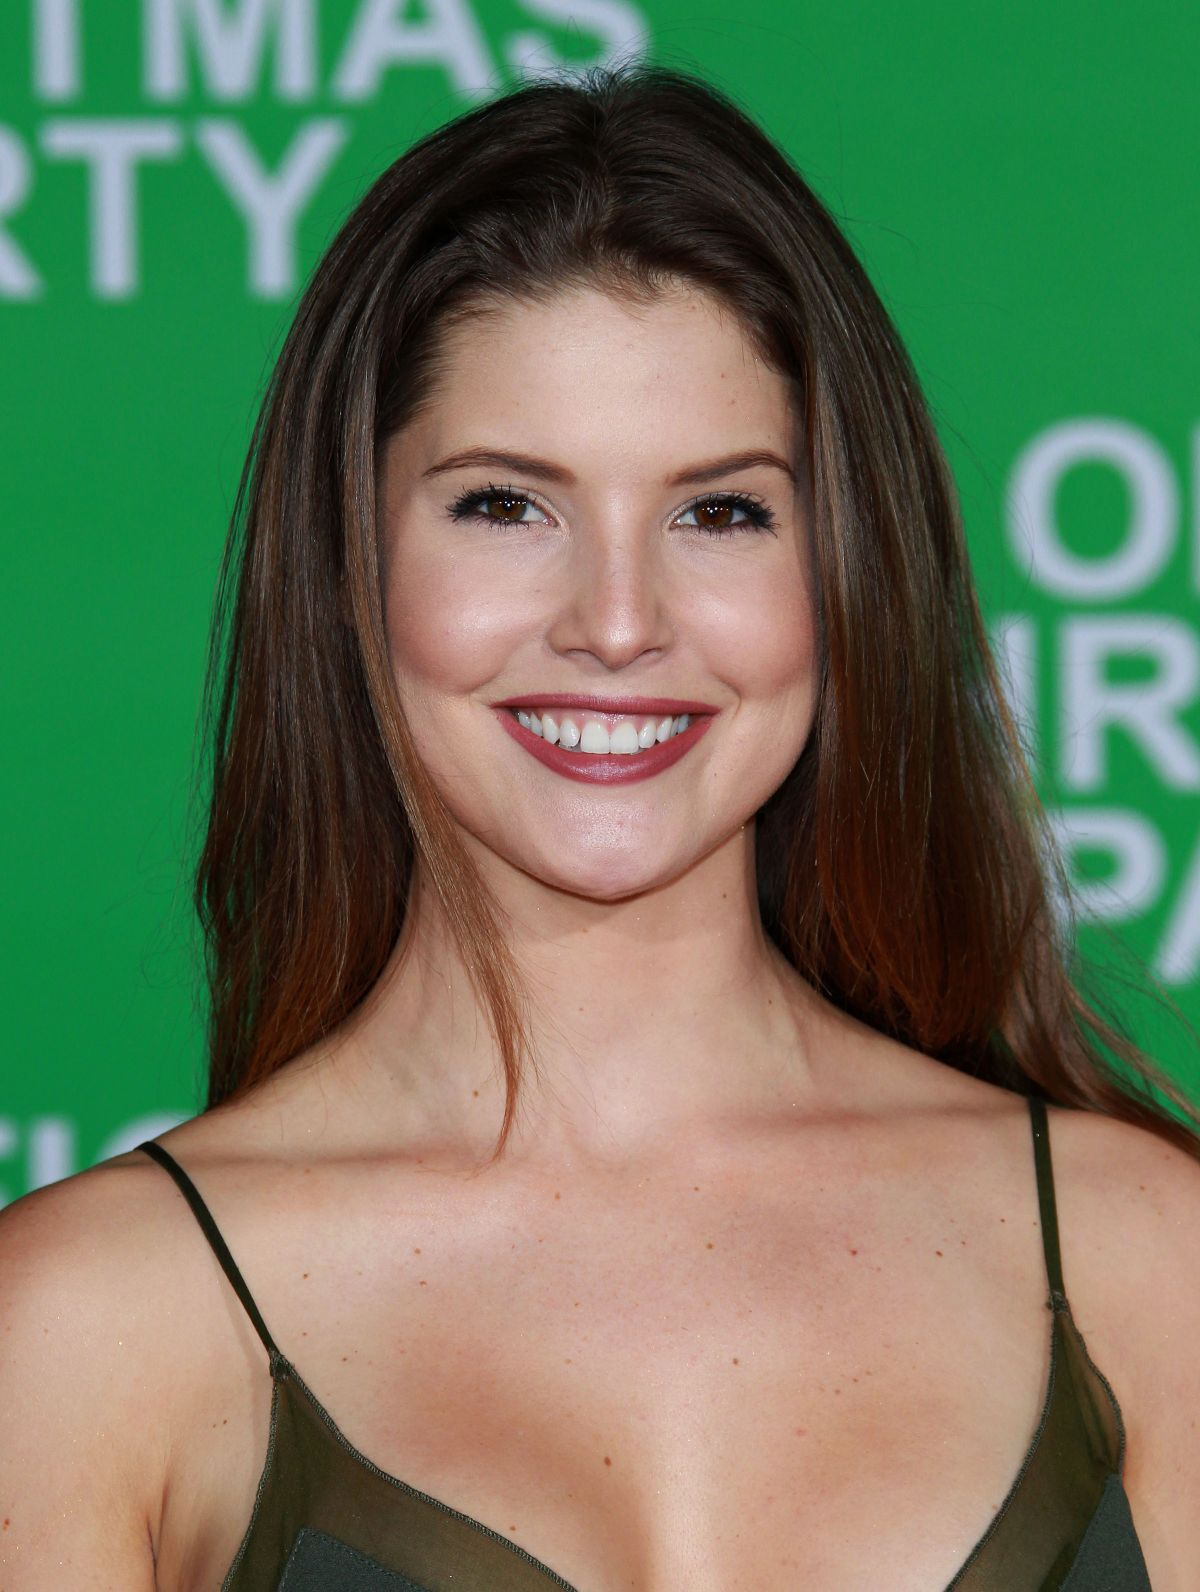 AMANDA CERNY at Office Christmas Party Premiere in Westwood 12/07/2016